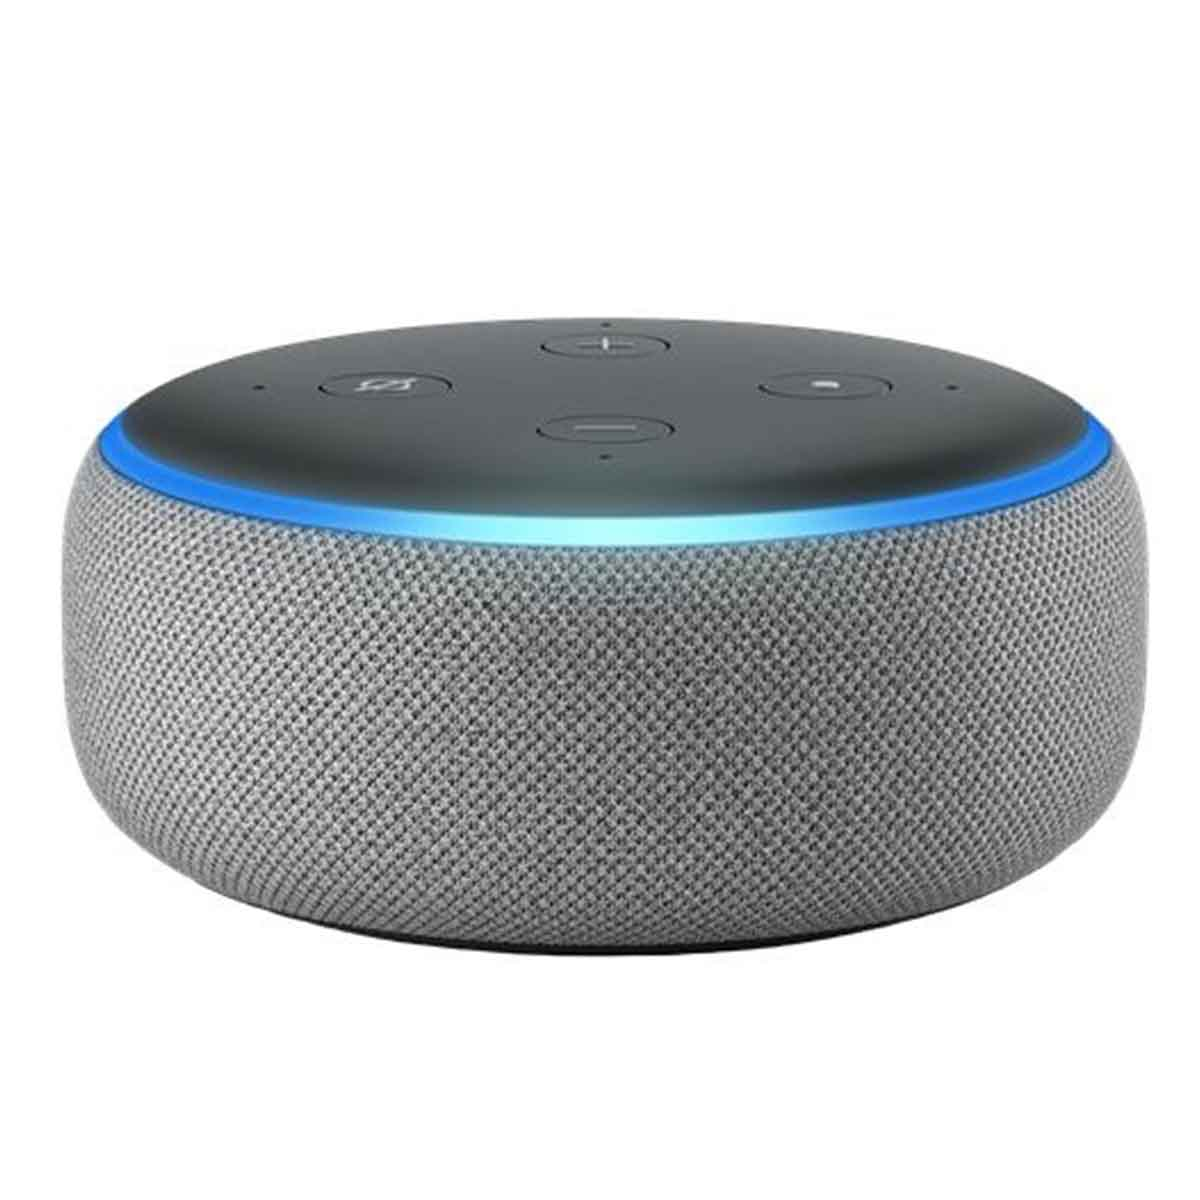 Echodot heathergray